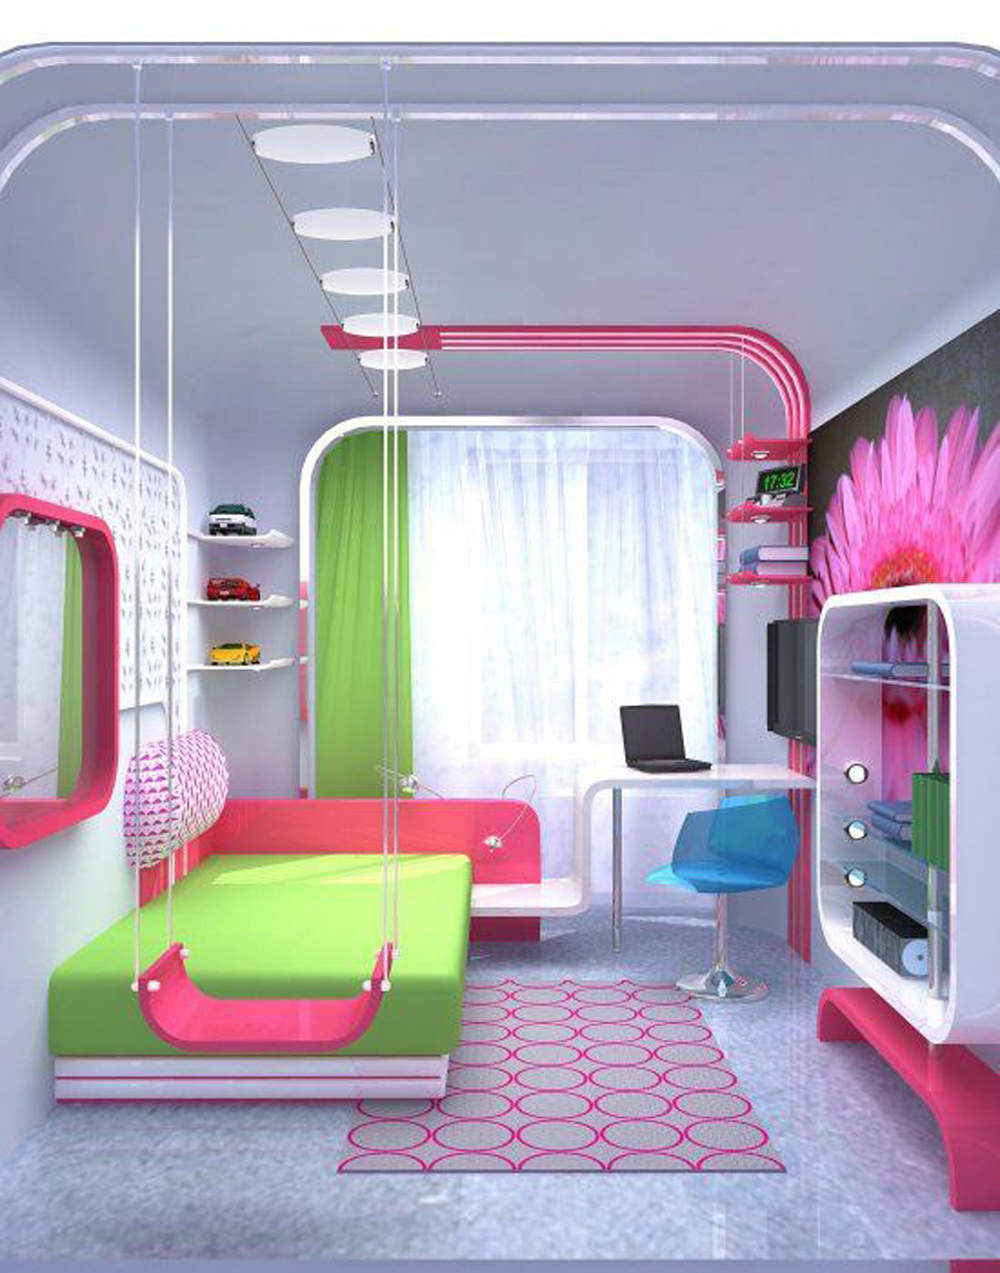 Stylish colorful bedrooms for girls allarchitecturedesigns Modern bedroom ideas for girls